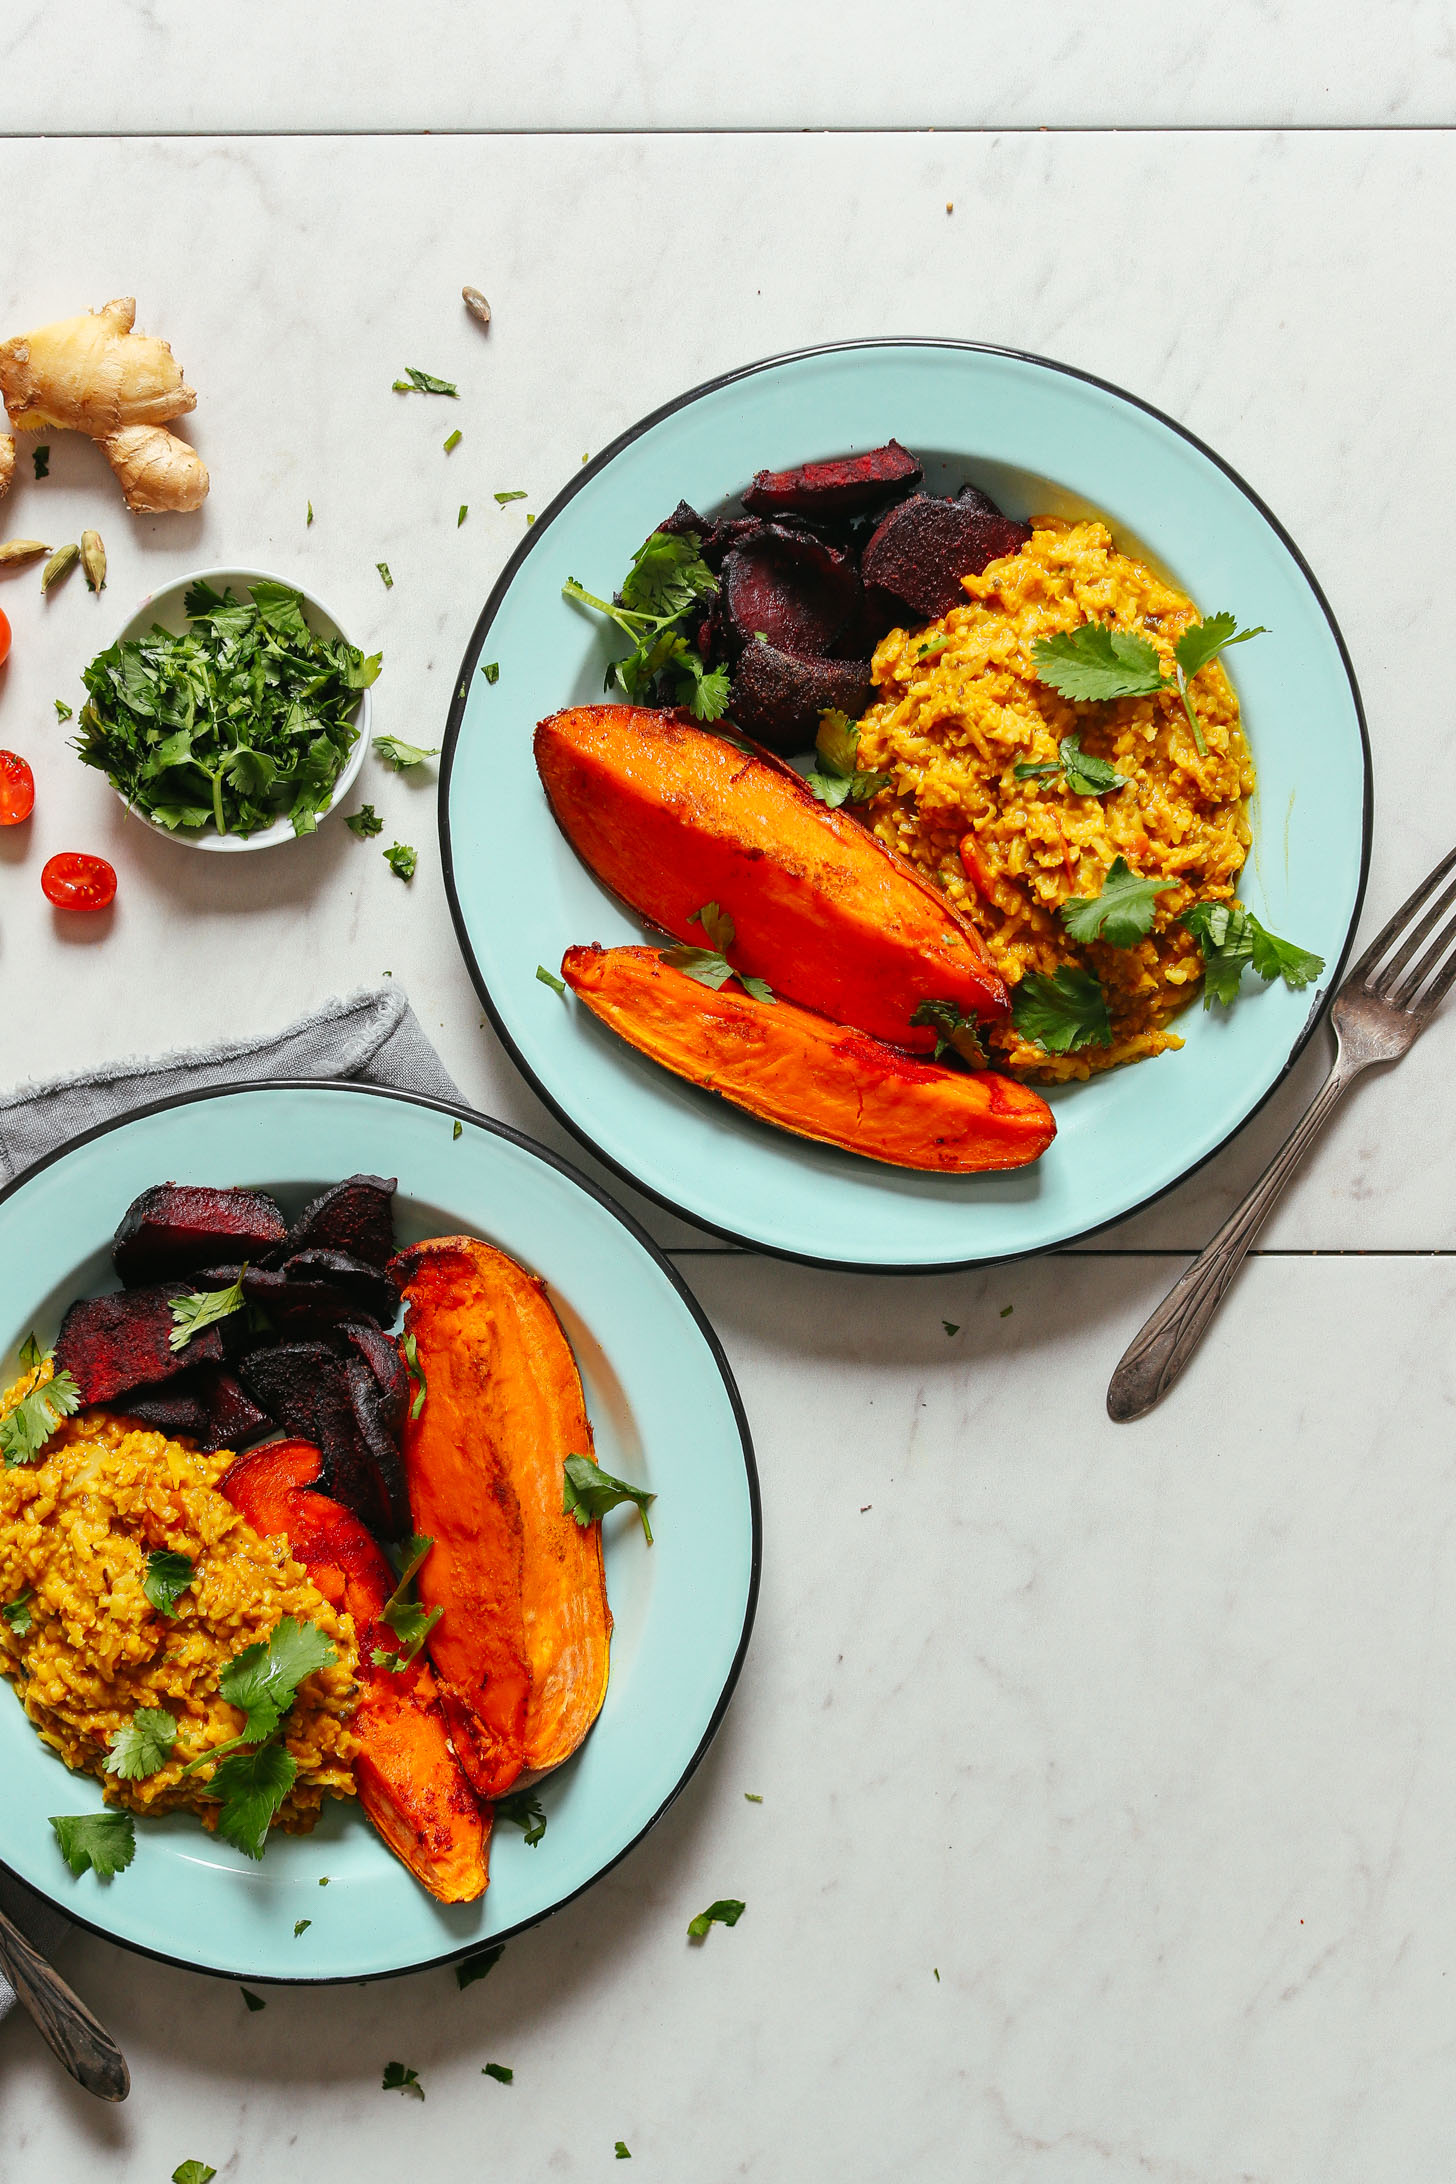 Two plates filled with roasted sweet potato and beets alongside Cauliflower Rice Kitchari for a comforting plant-based meal